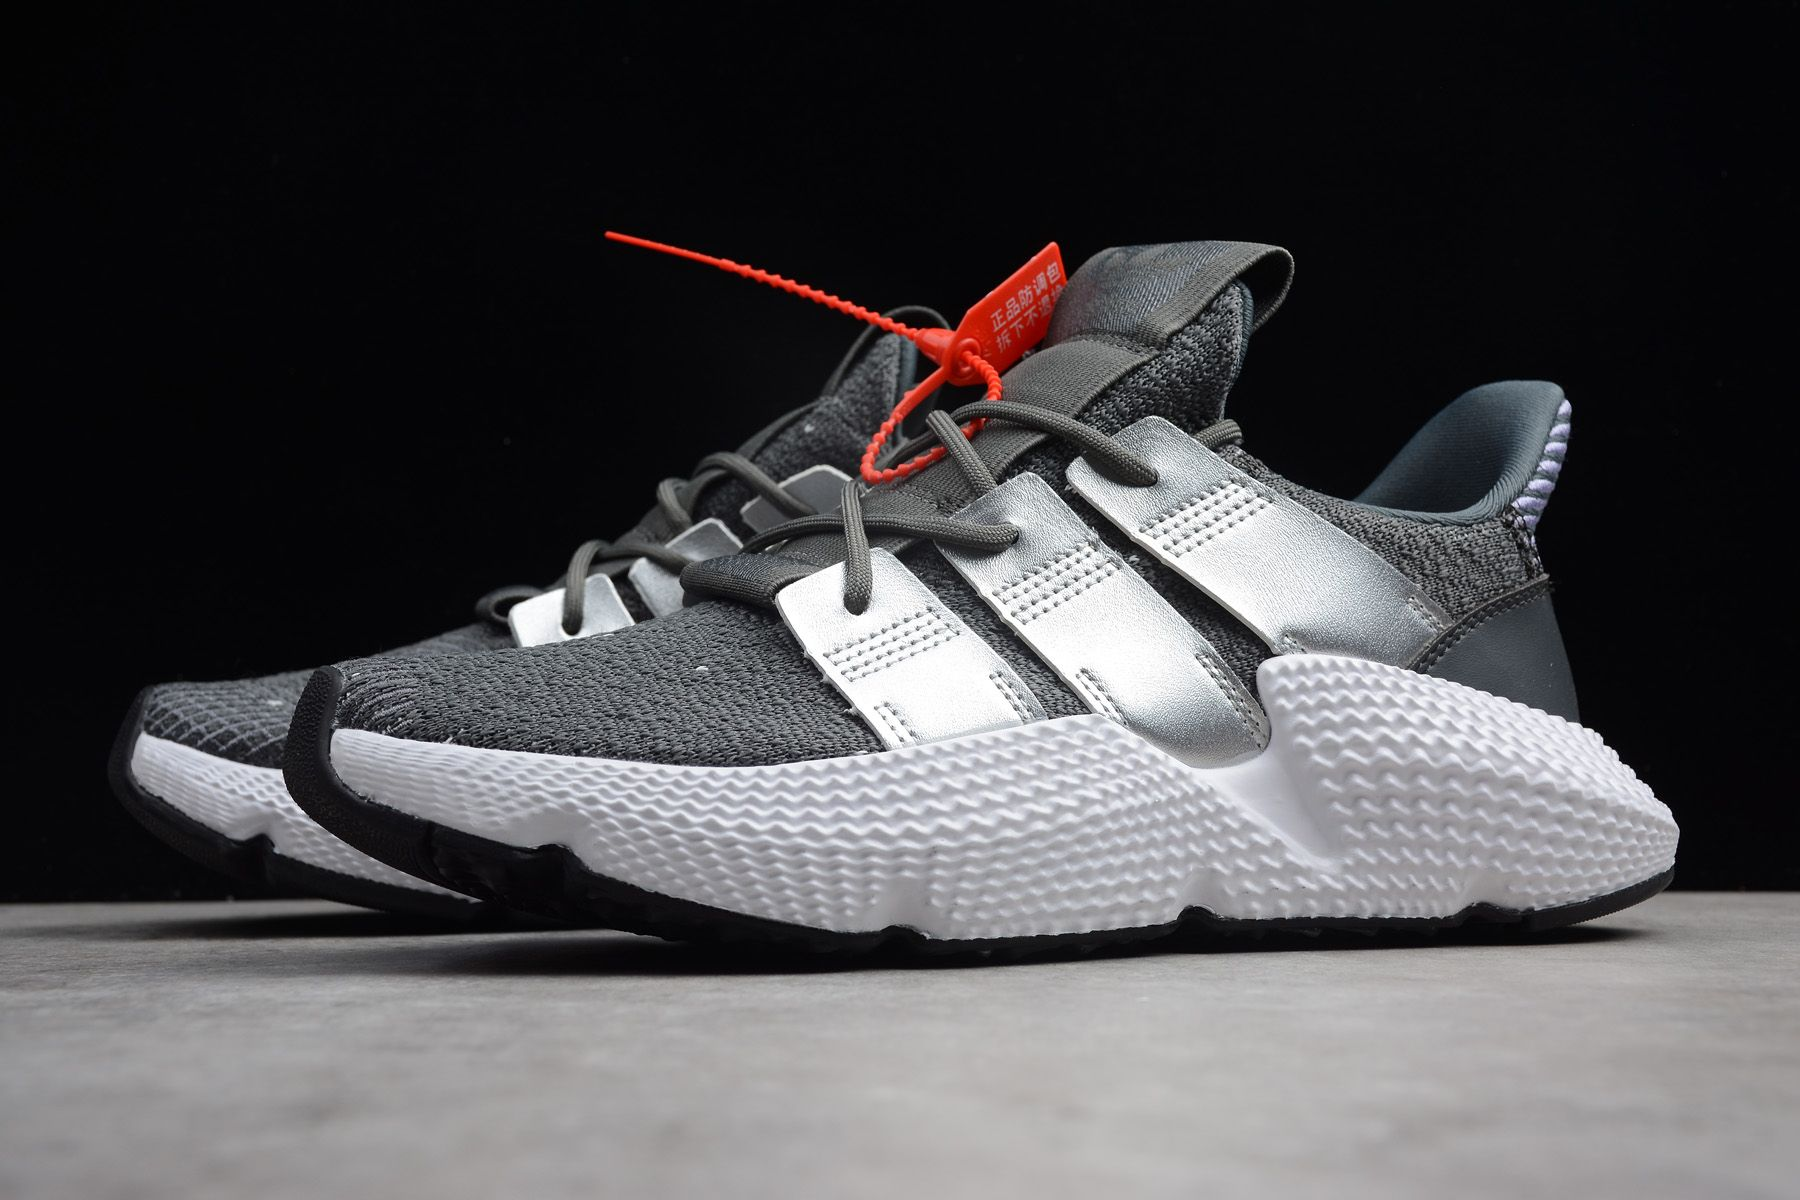 6bb0999f adidas Originals Prophere UNDFTD Grey/Silver D96613 in 2019 | adidas ...